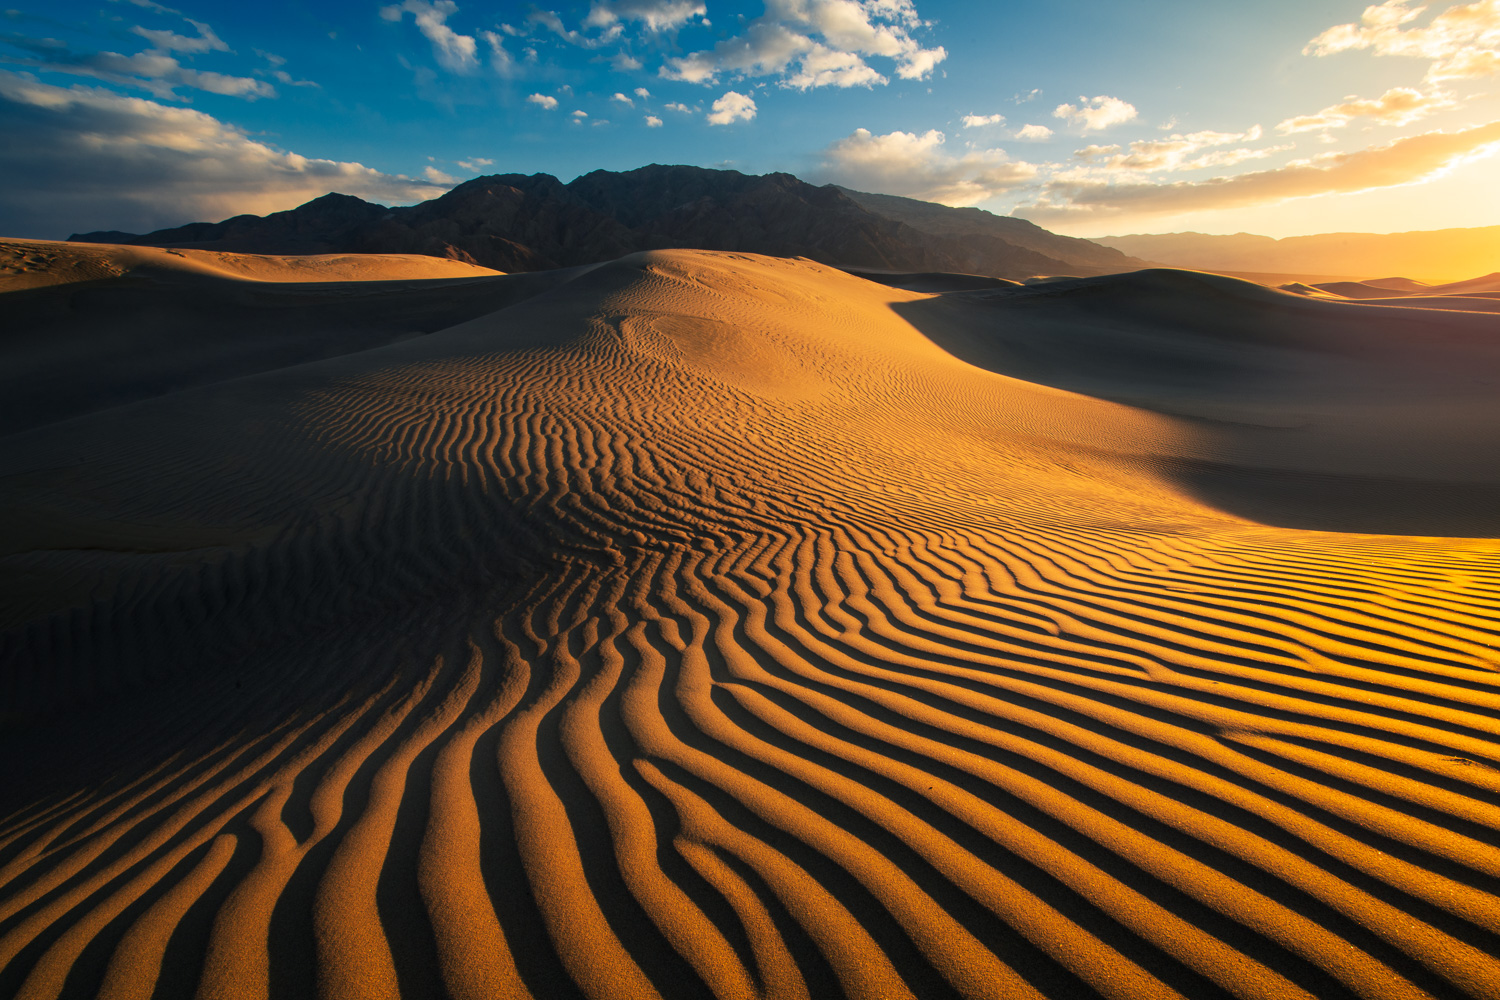 A dramatic display of light and shadow at the Mesquite Sand Dunes, Death Valley National Park, California.